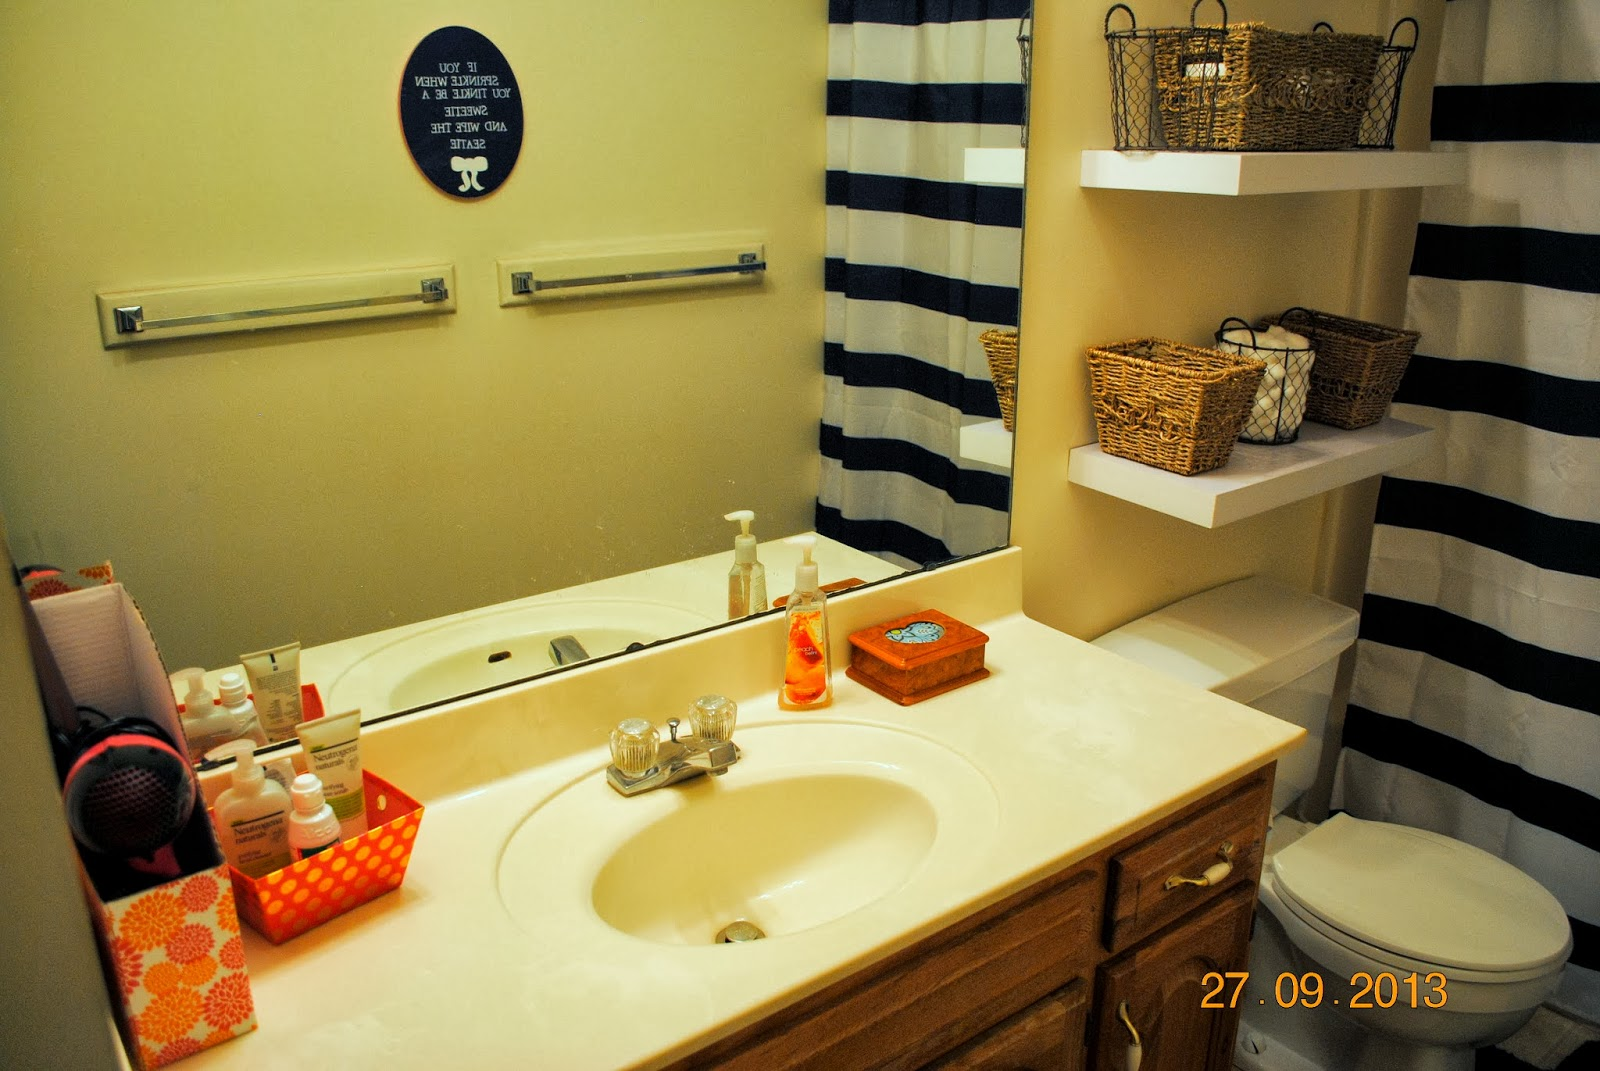 Plain Apartment Bathroom Ideas Pinterest Decorating On A Budget